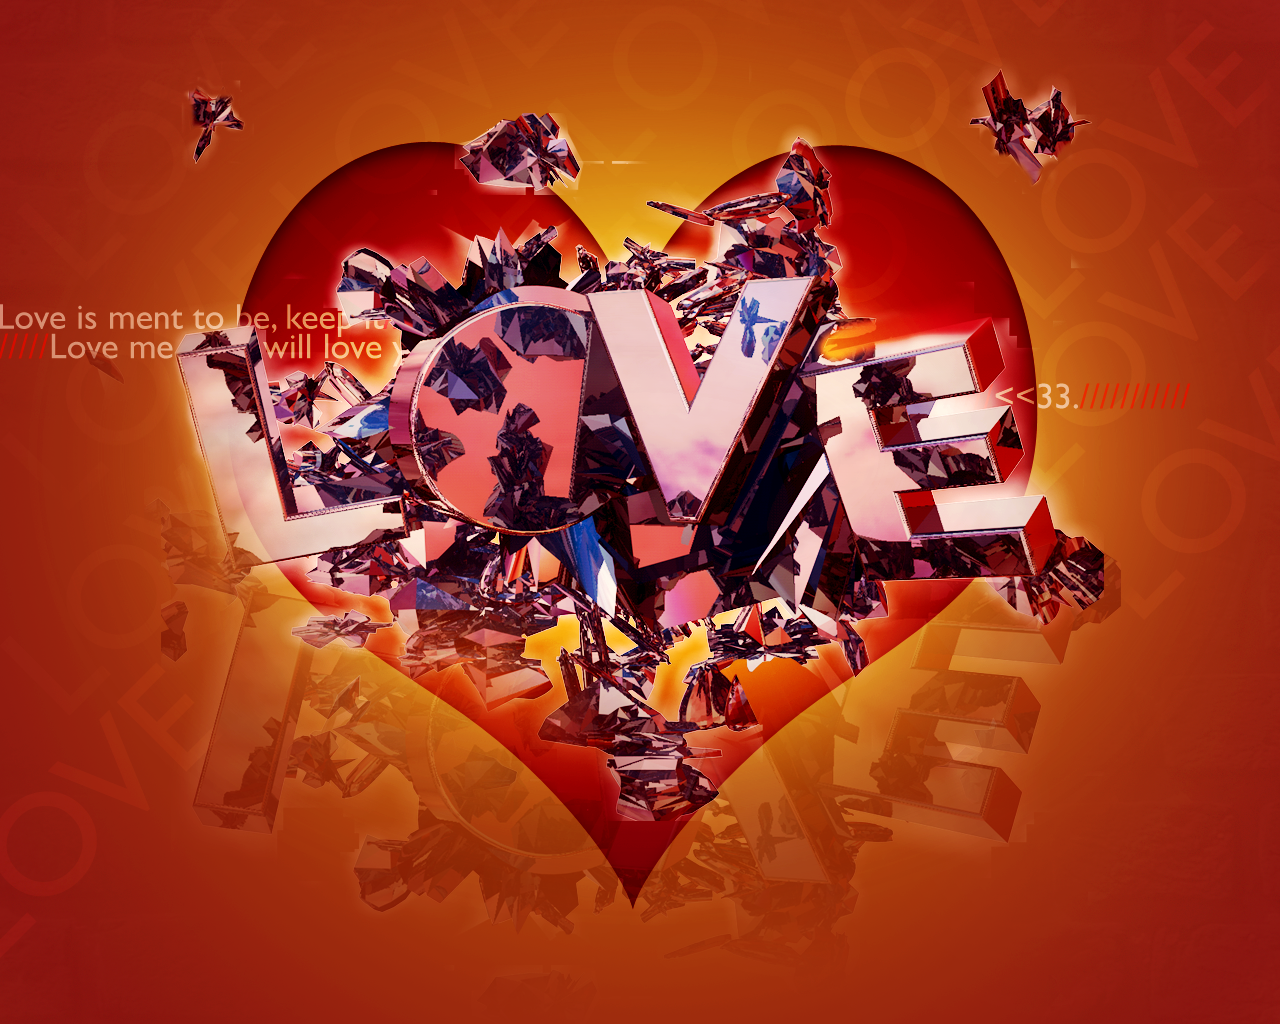 Love Wallpapers New Latest : Amazing Wallpapers: New love photos wallpaper, new love ...